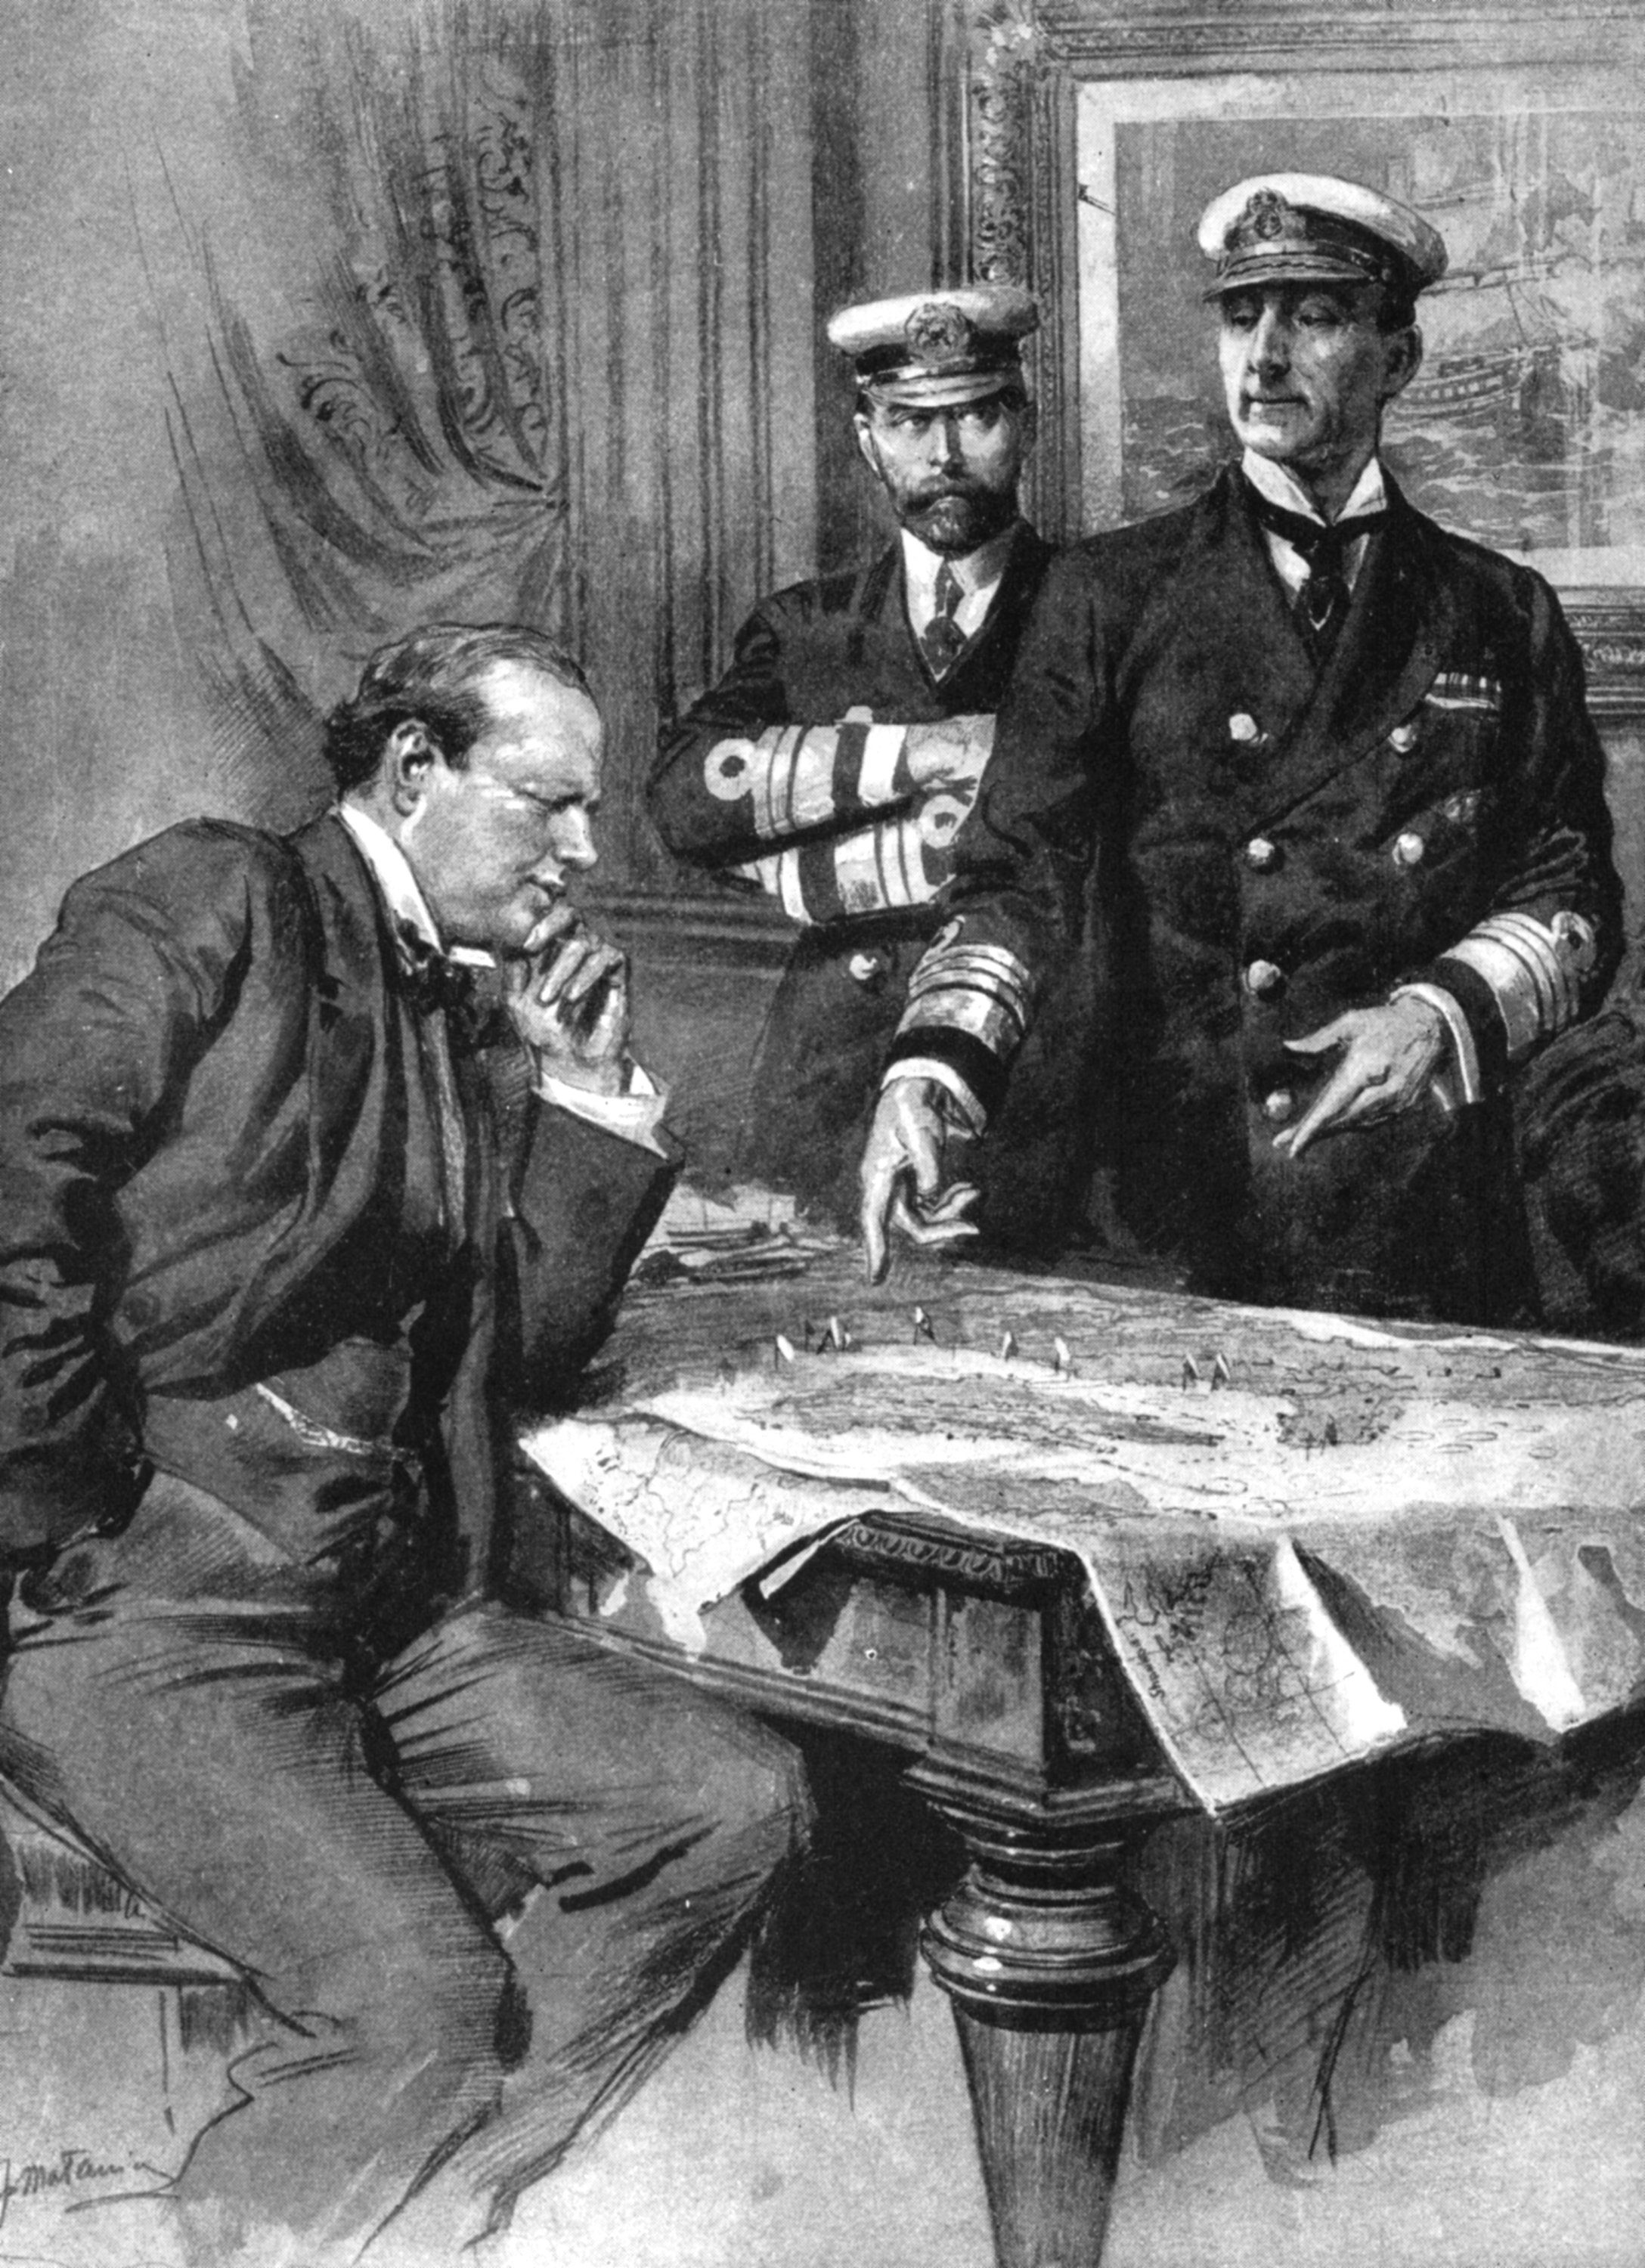 An illustration shows First Lord of the Admiralty Winston Churchill, Charles Madden, Commander-in-Chief of the Atlantic Fleet; Sir John Jellicoe, Commander of the Grand Fleet, during First World War, 1914. (Getty Images)